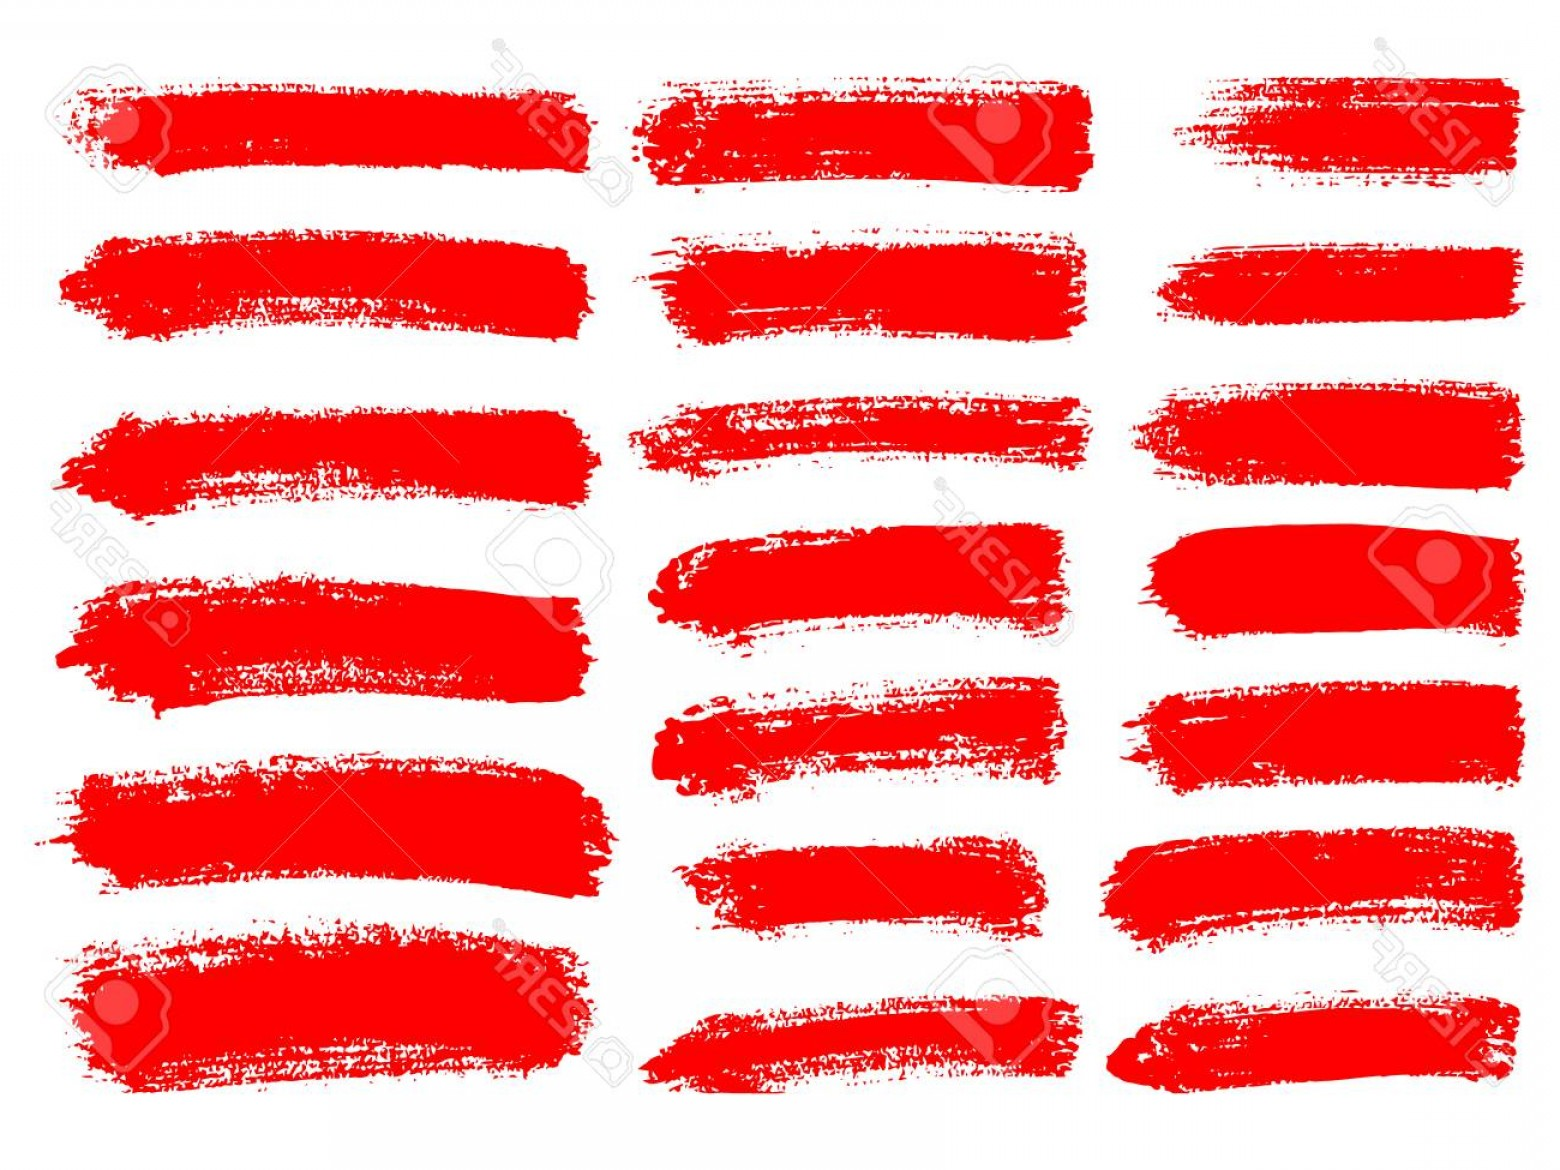 Grunge Stripes Vector: Photostock Vector Painted Grunge Stripes Set Red Labels Background Paint Texture Brush Strokes Vector Handmade Design